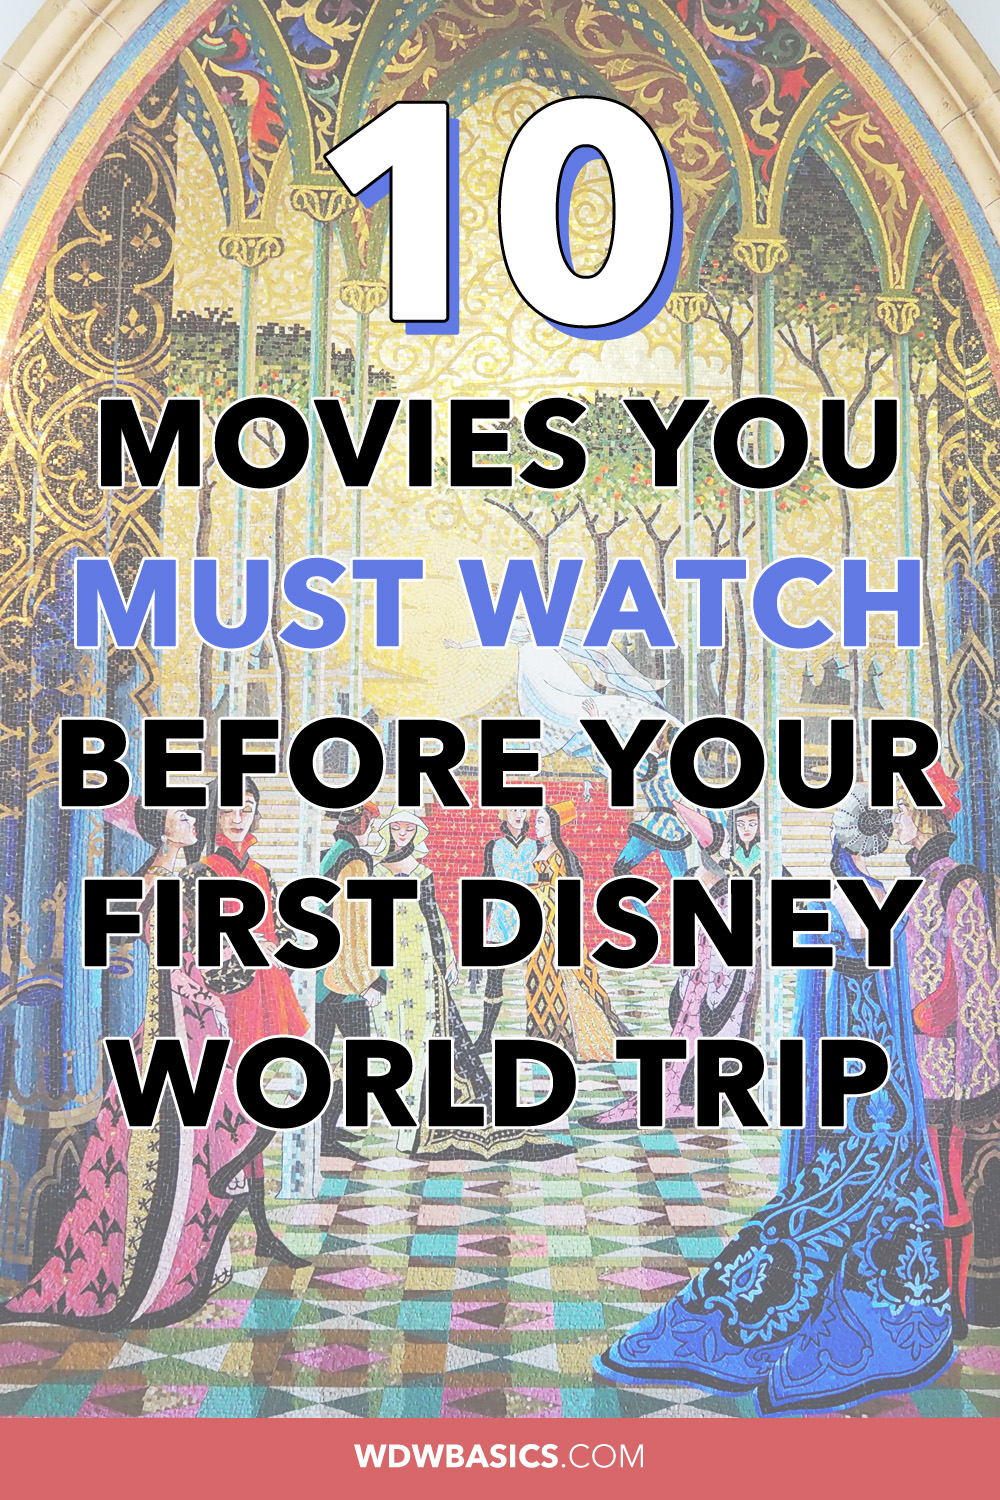 10 Movies You Must Watch Before Your First Disney World Trip